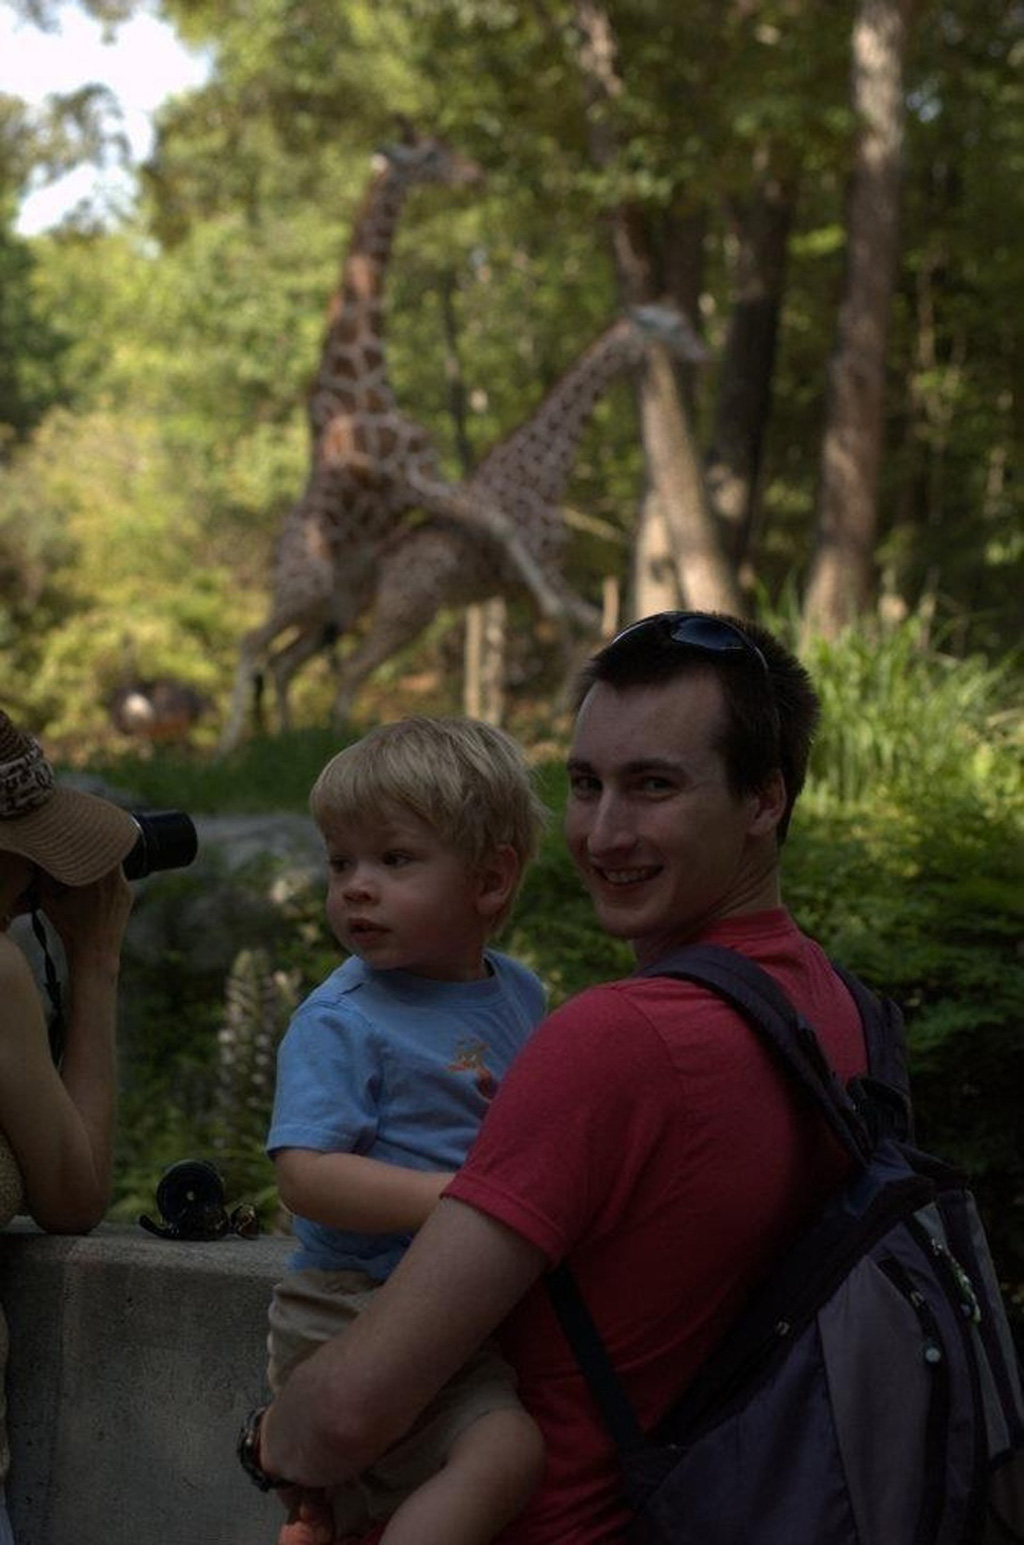 20) These giraffes love the art of photobombing...and the art of love.